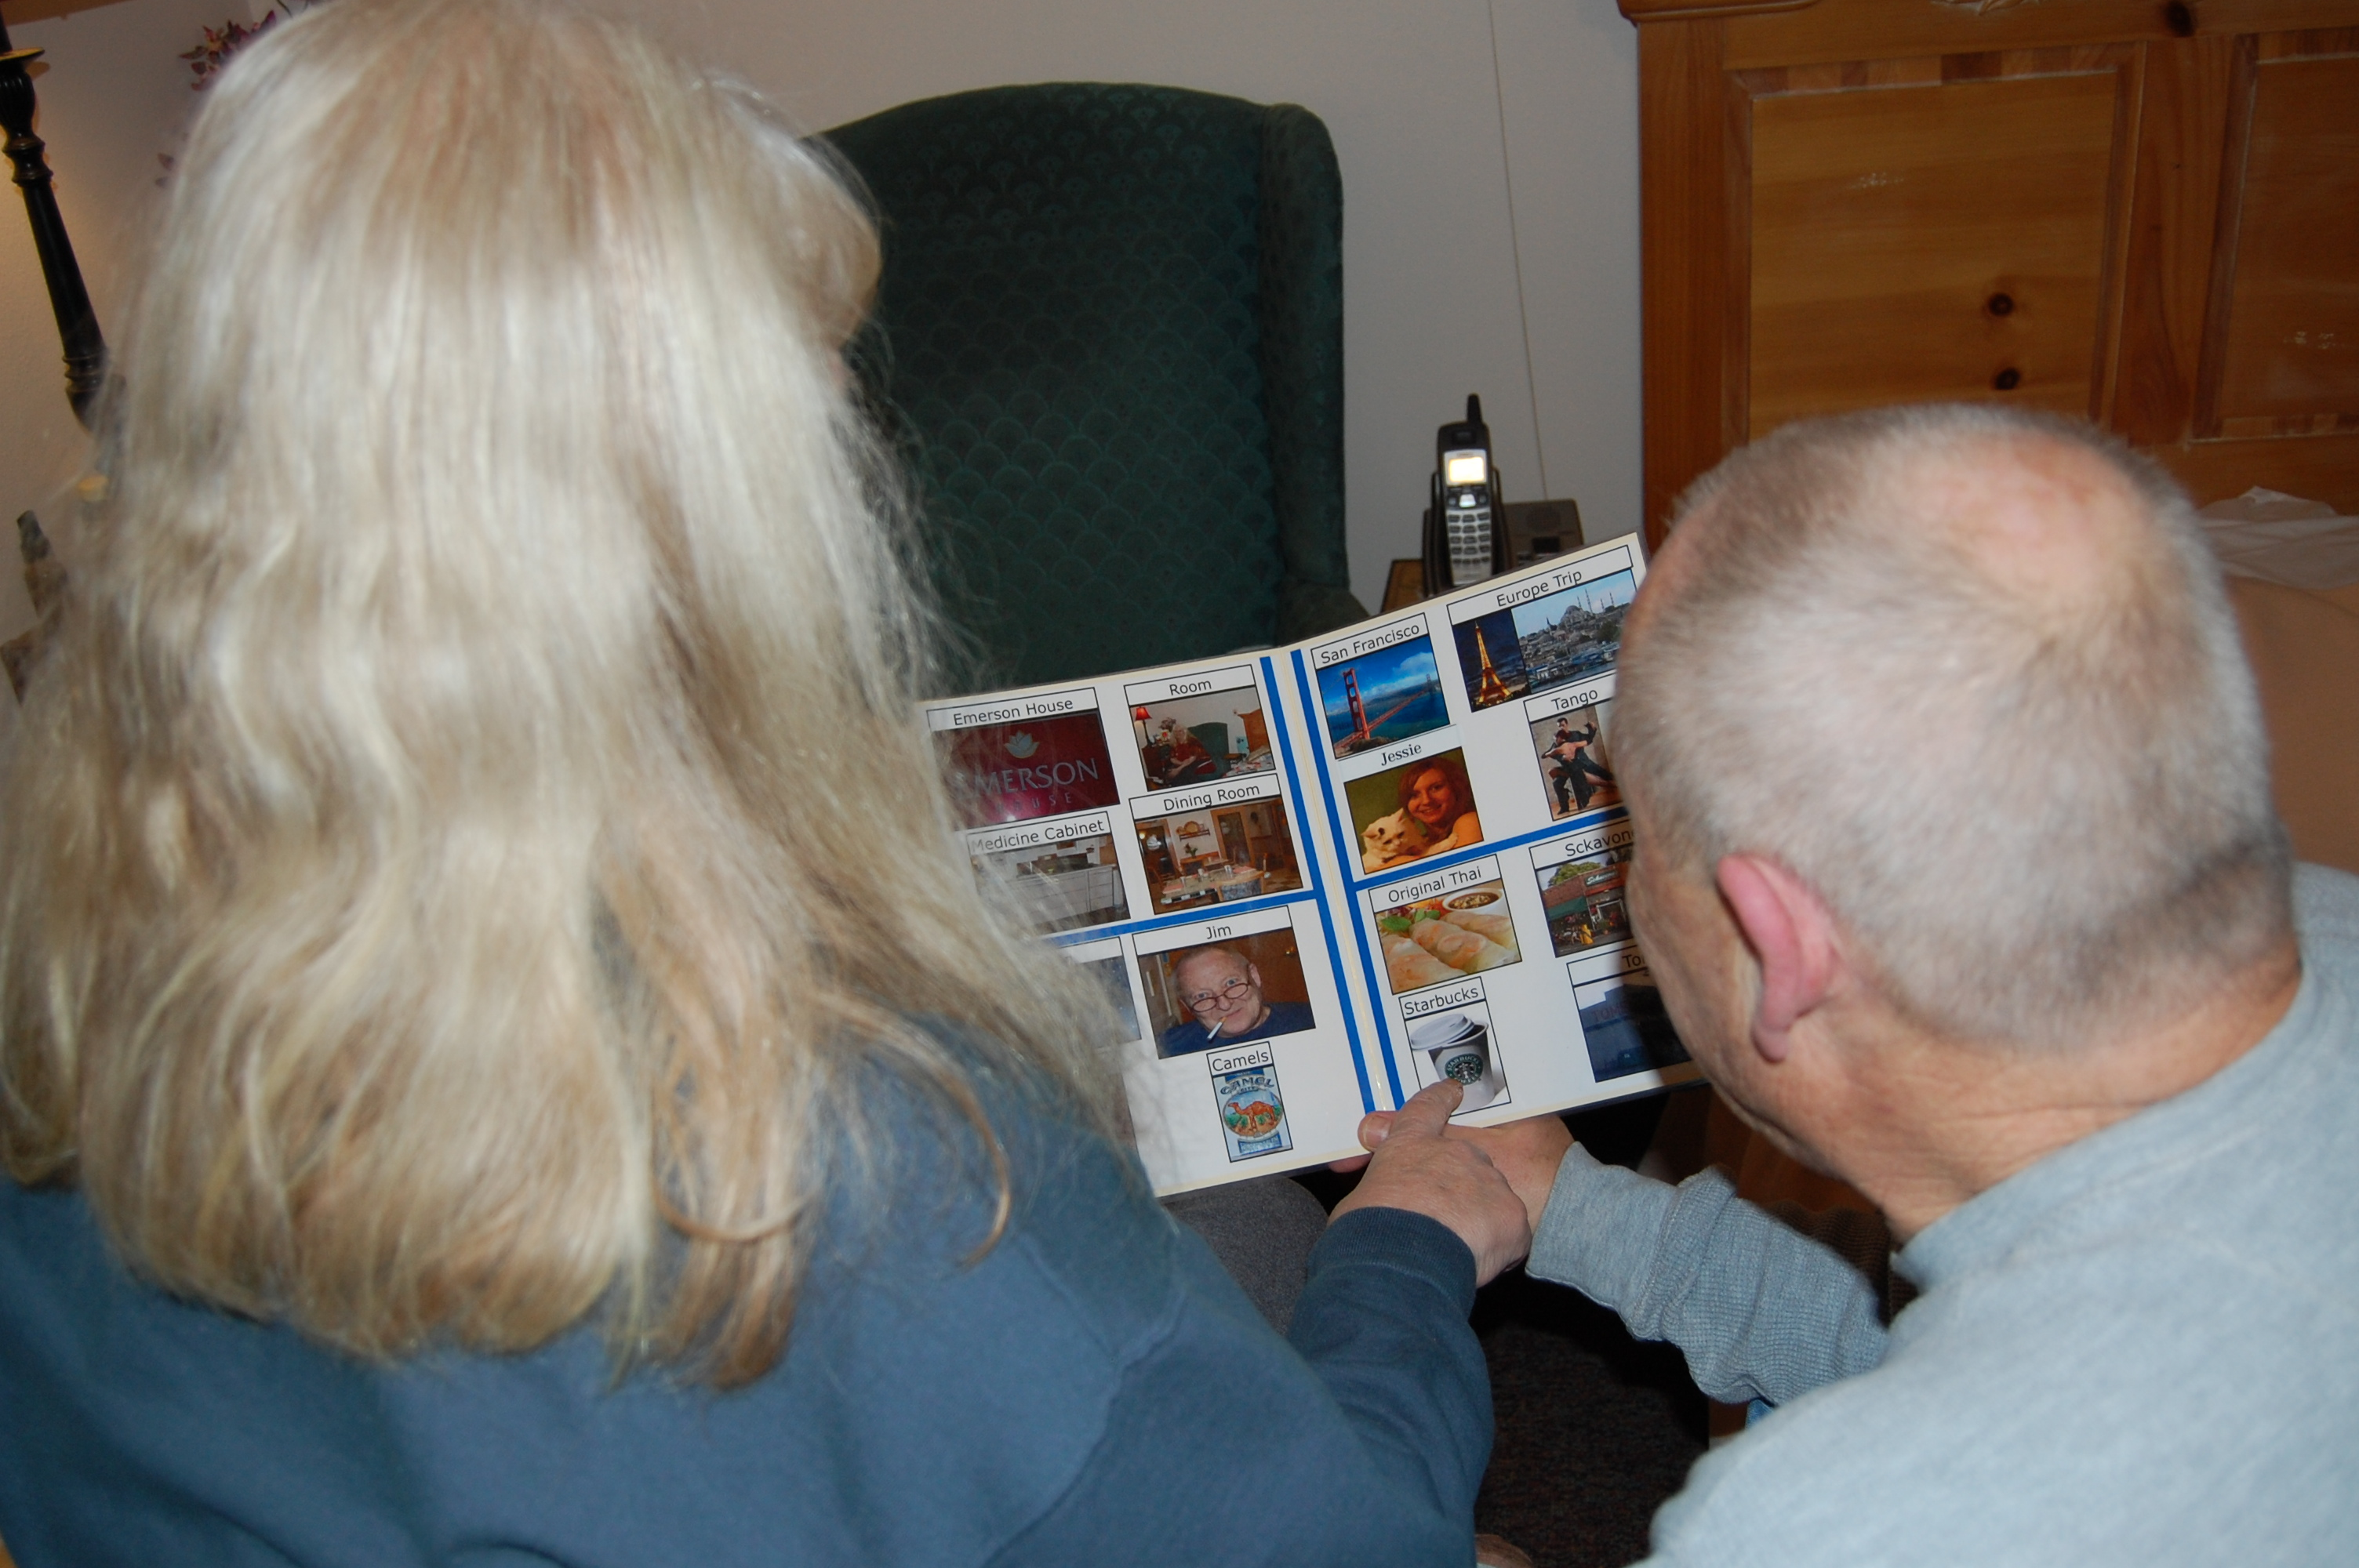 A woman and man with gray hair using an image grid